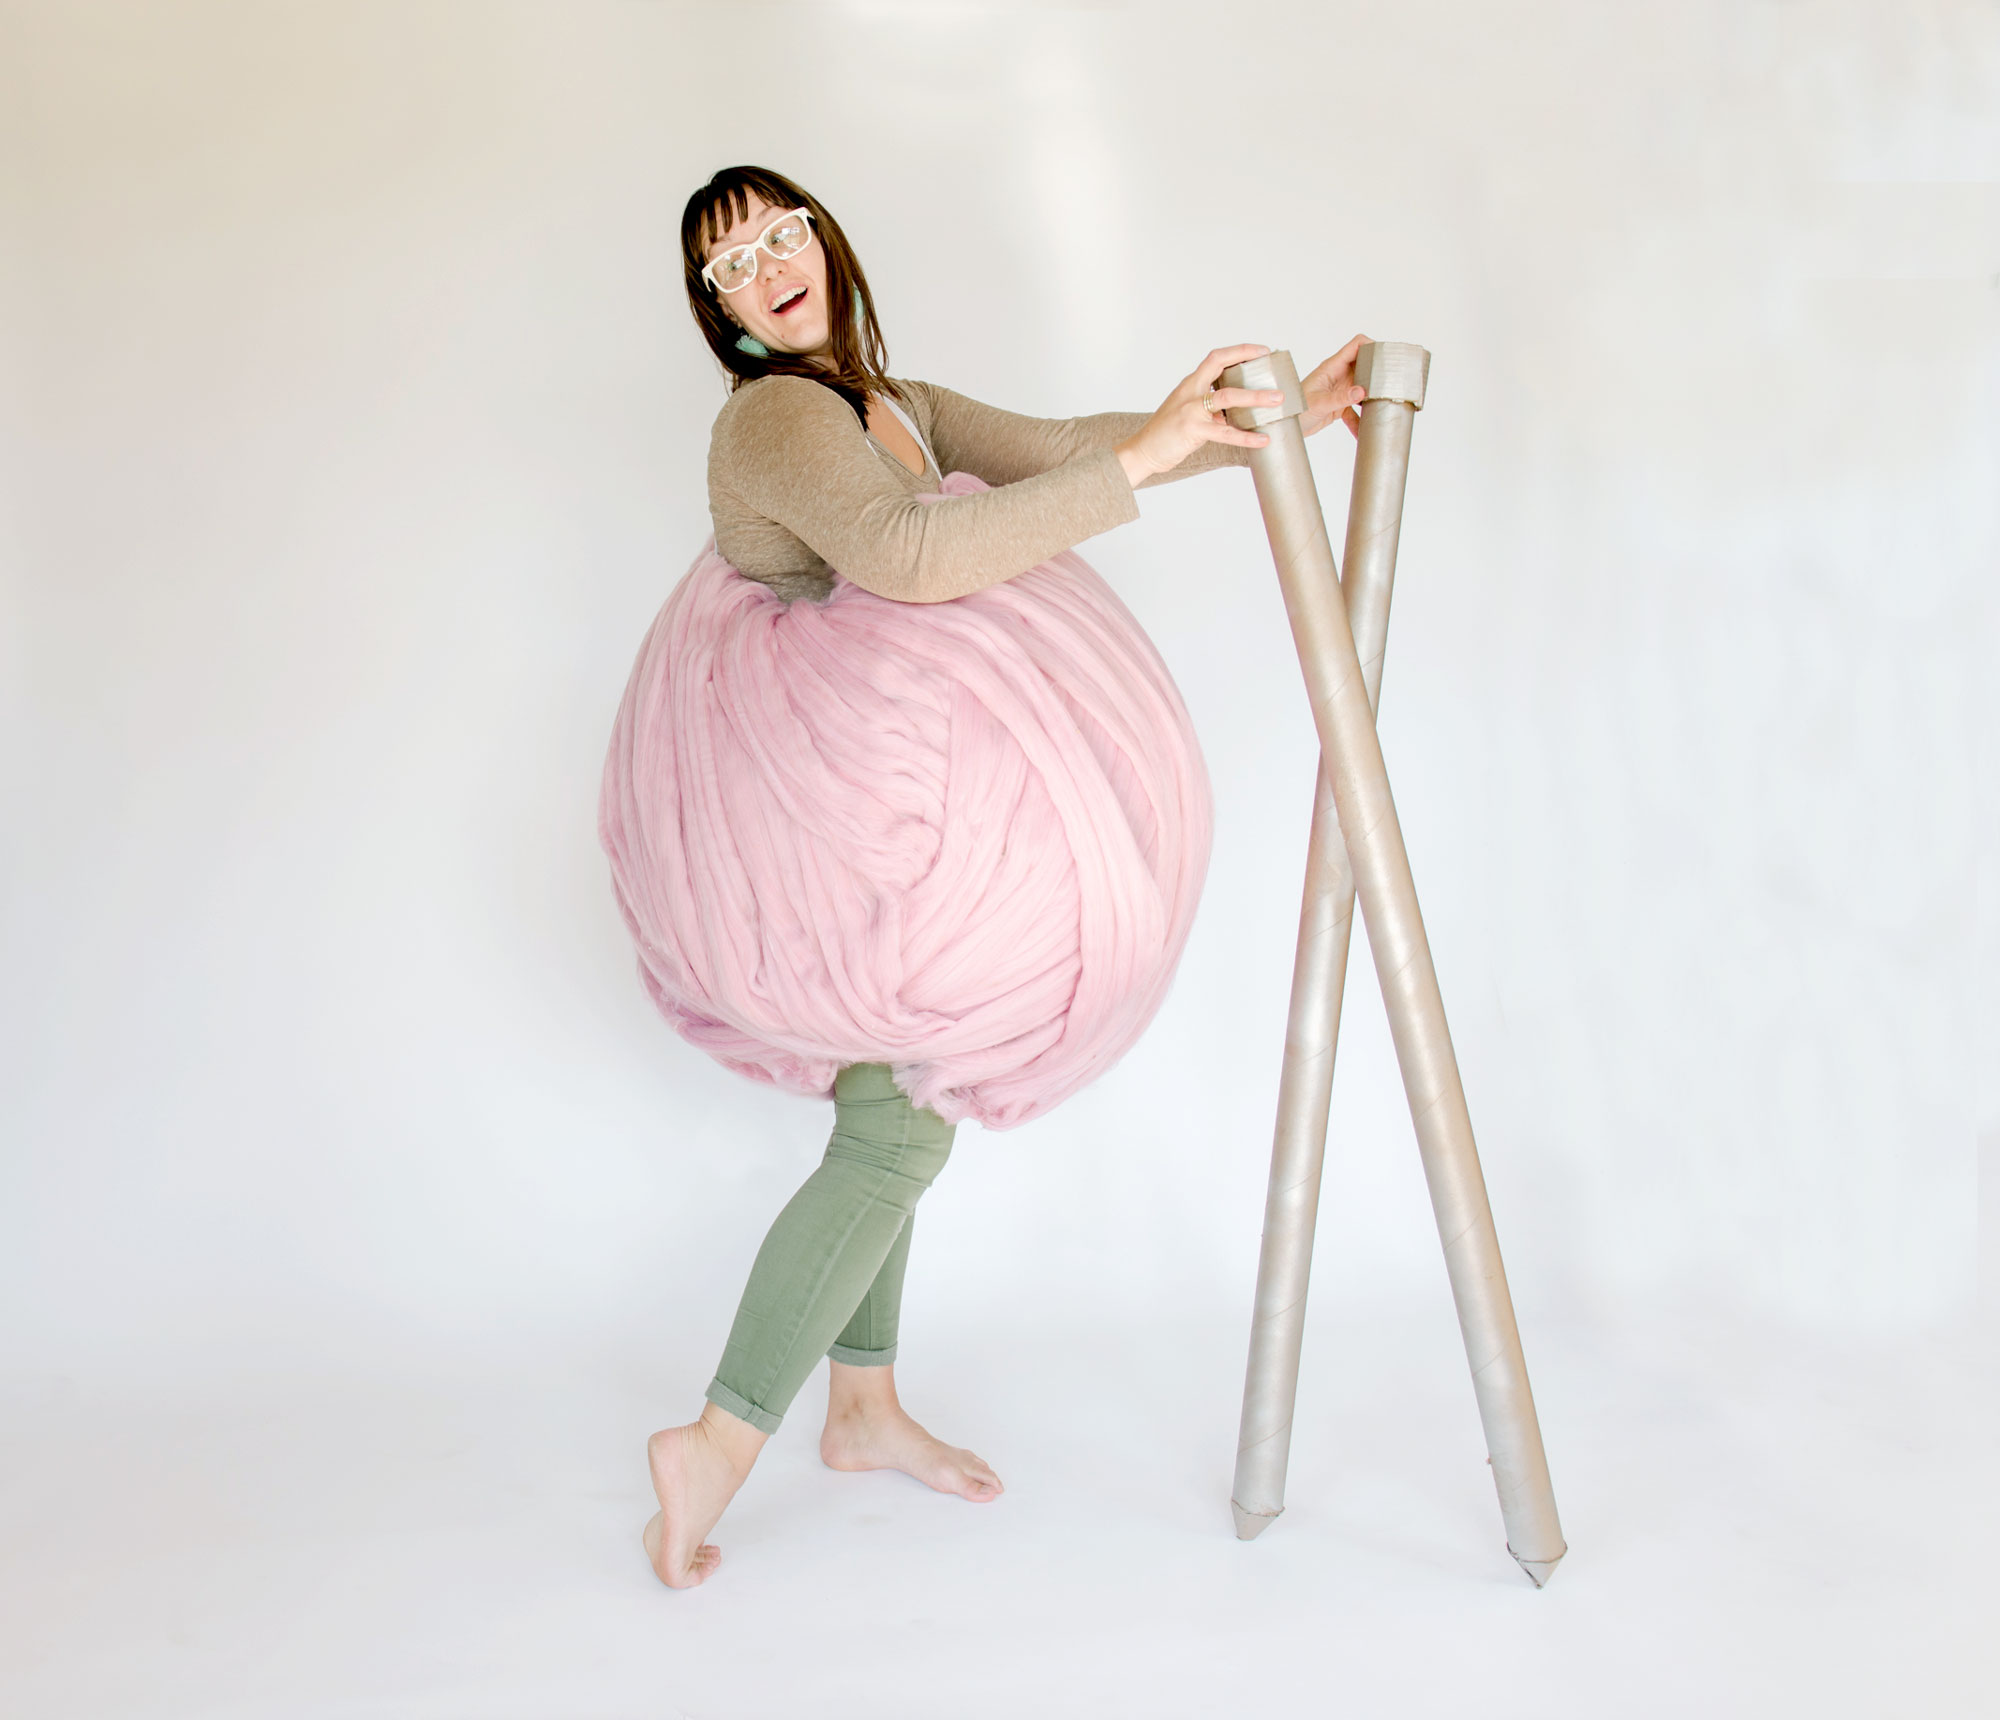 DIY Yarn ball costume, DIY Halloween costumes, DIY halloween, handmade halloween costume, how to make a yarn ball costume